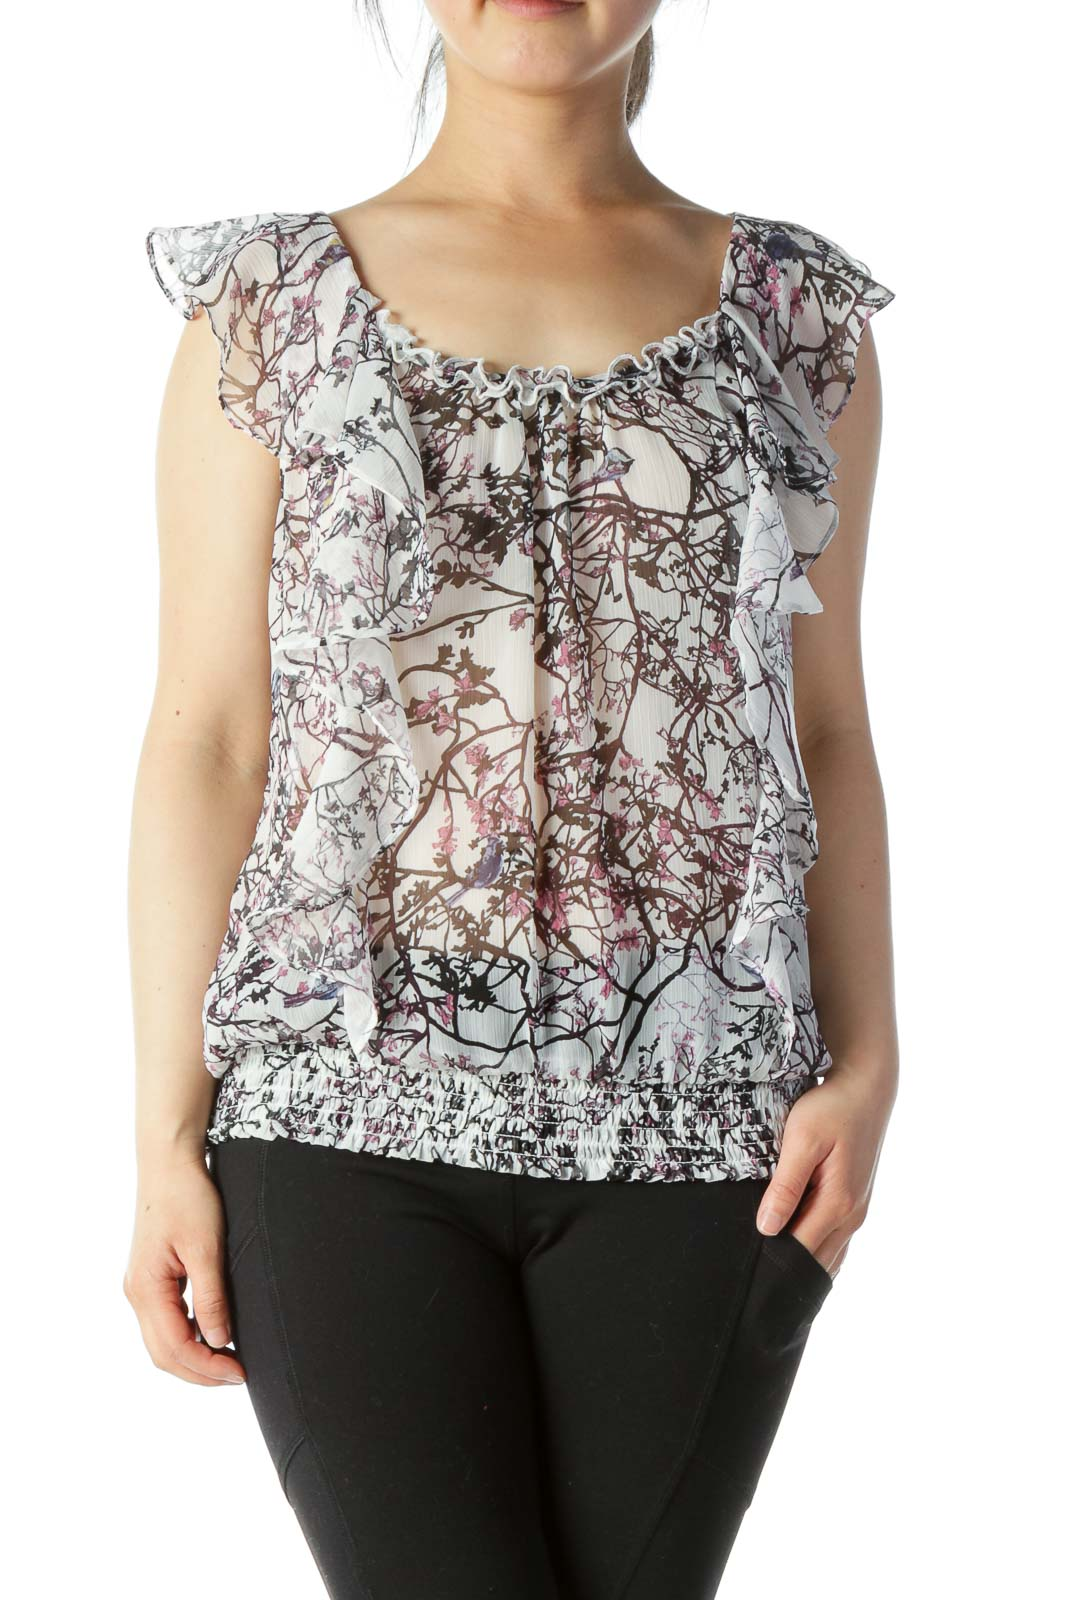 Multicolored Floral-Print Ruffled Translucent Cinched-Waist Blouse